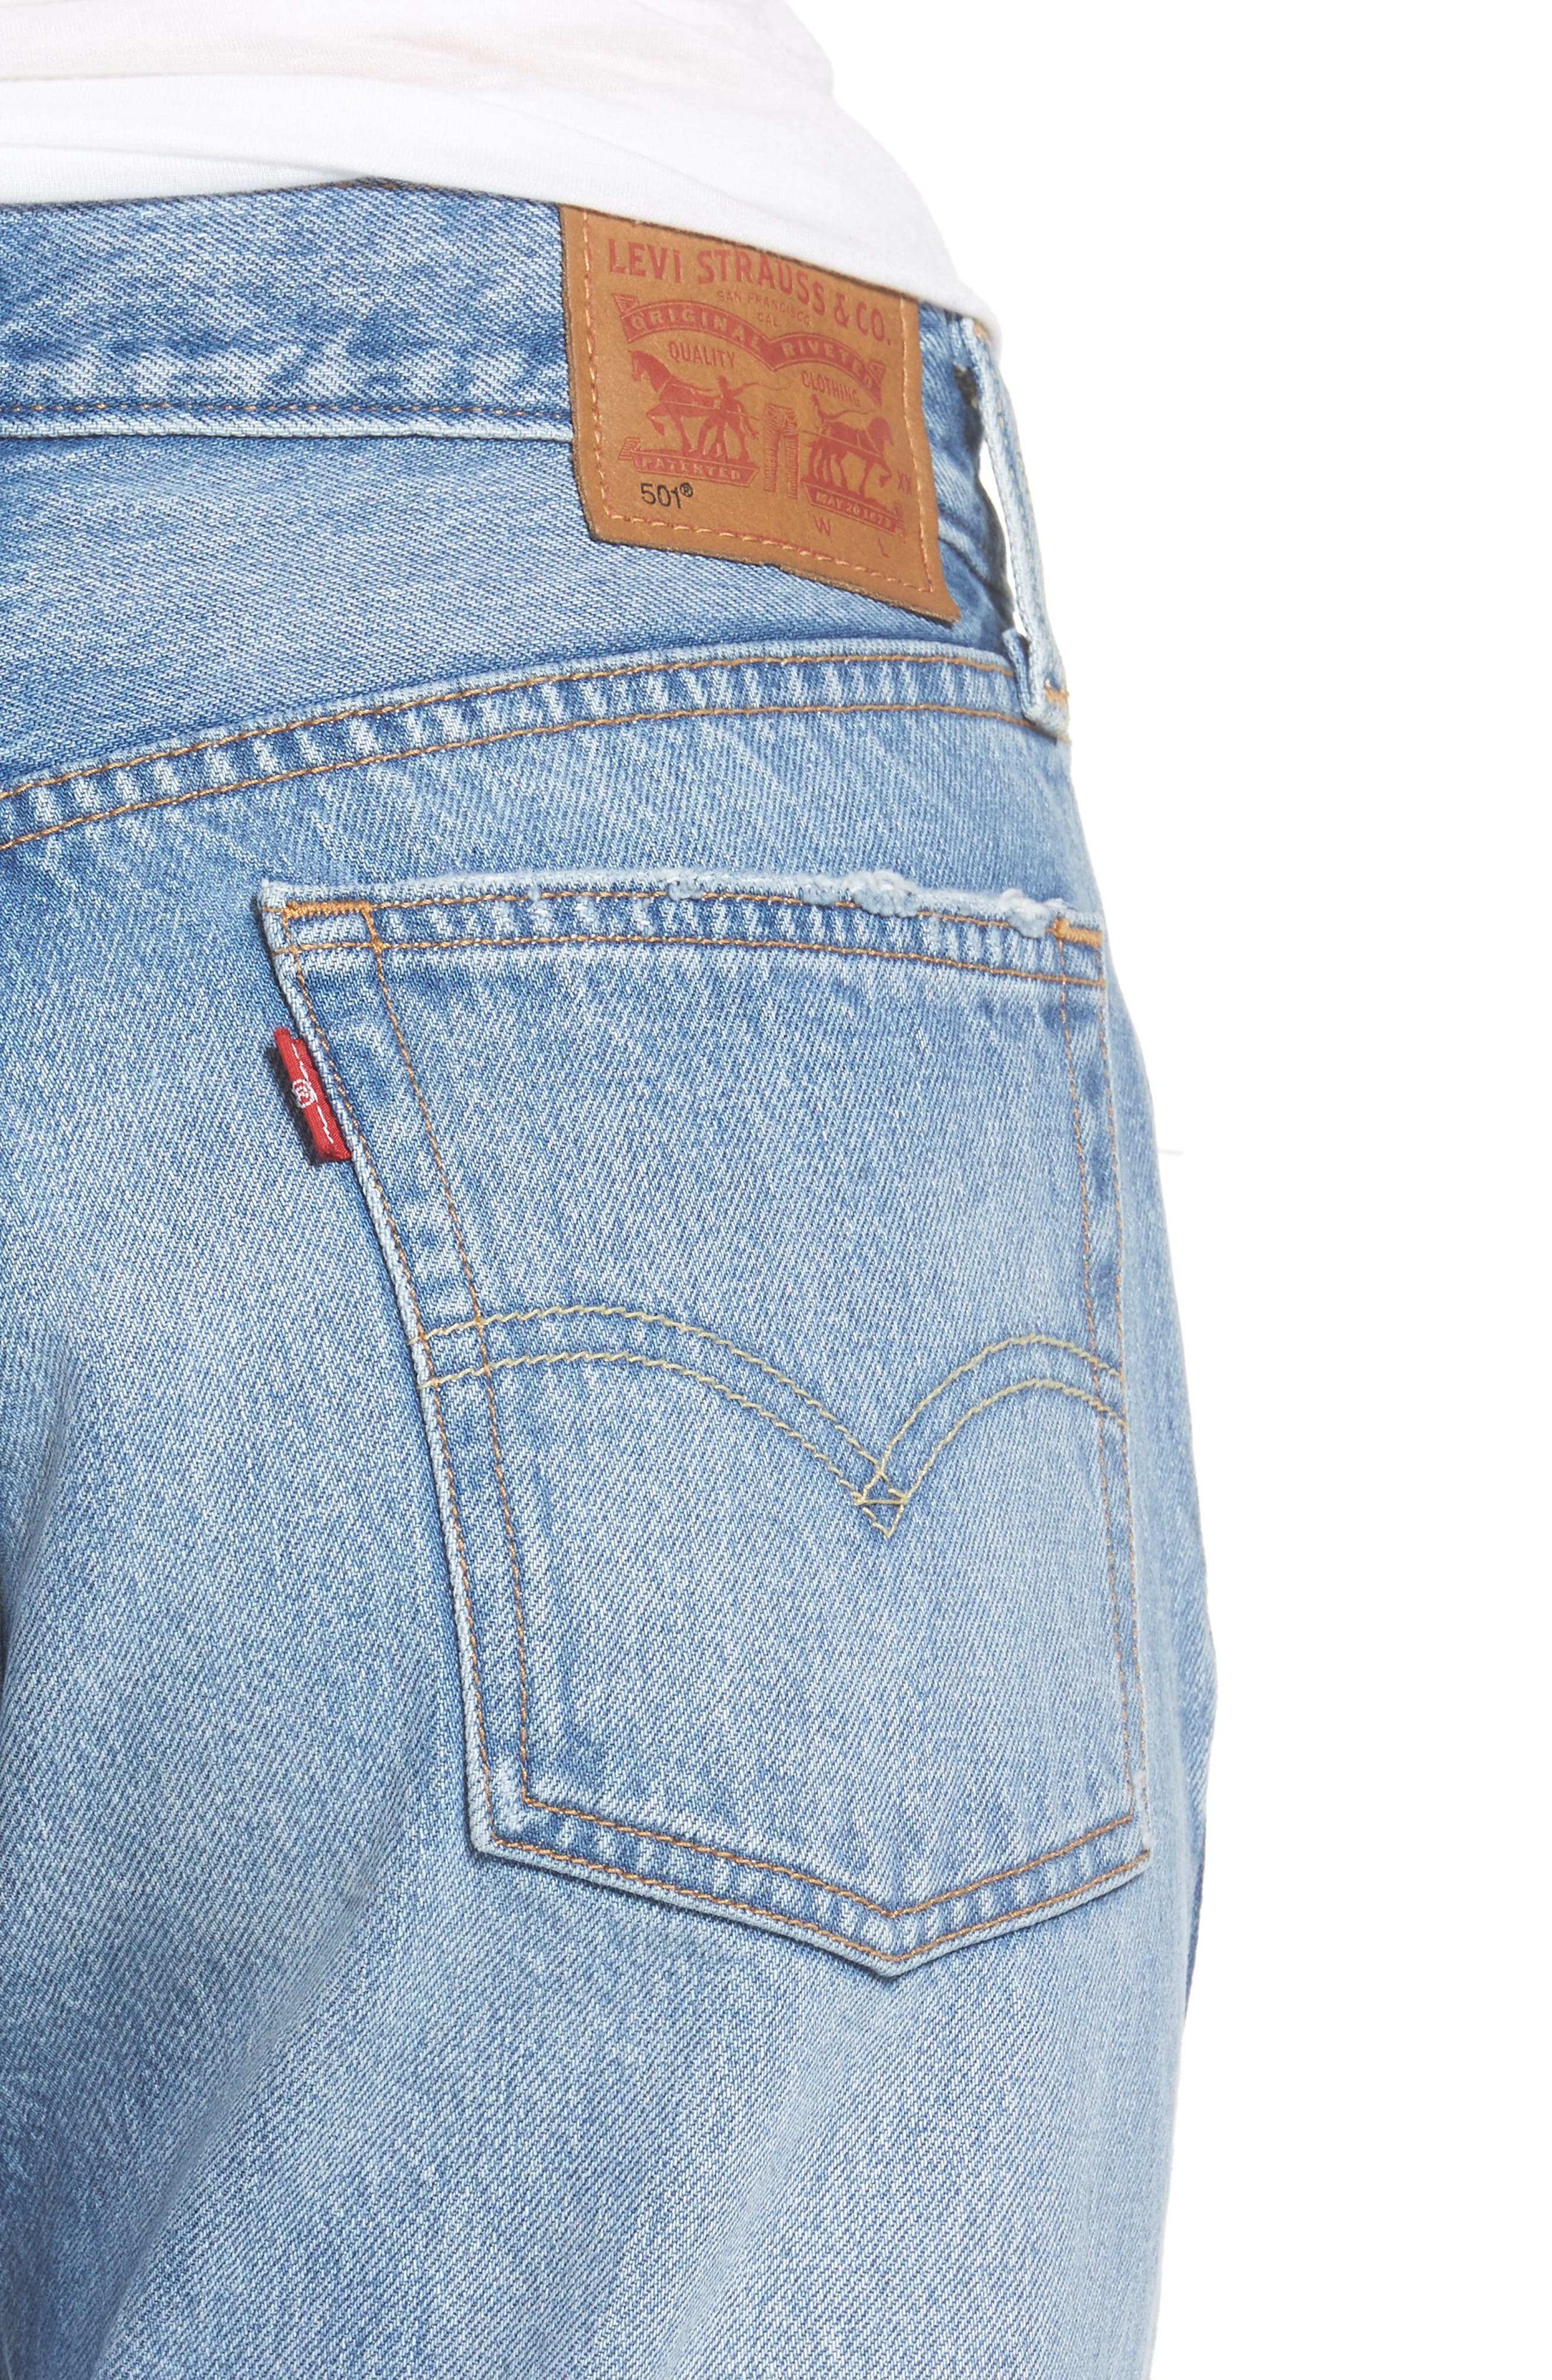 Alternate Image 4  - Levi's® 501 Crop Jeans (You Pretty Thing)